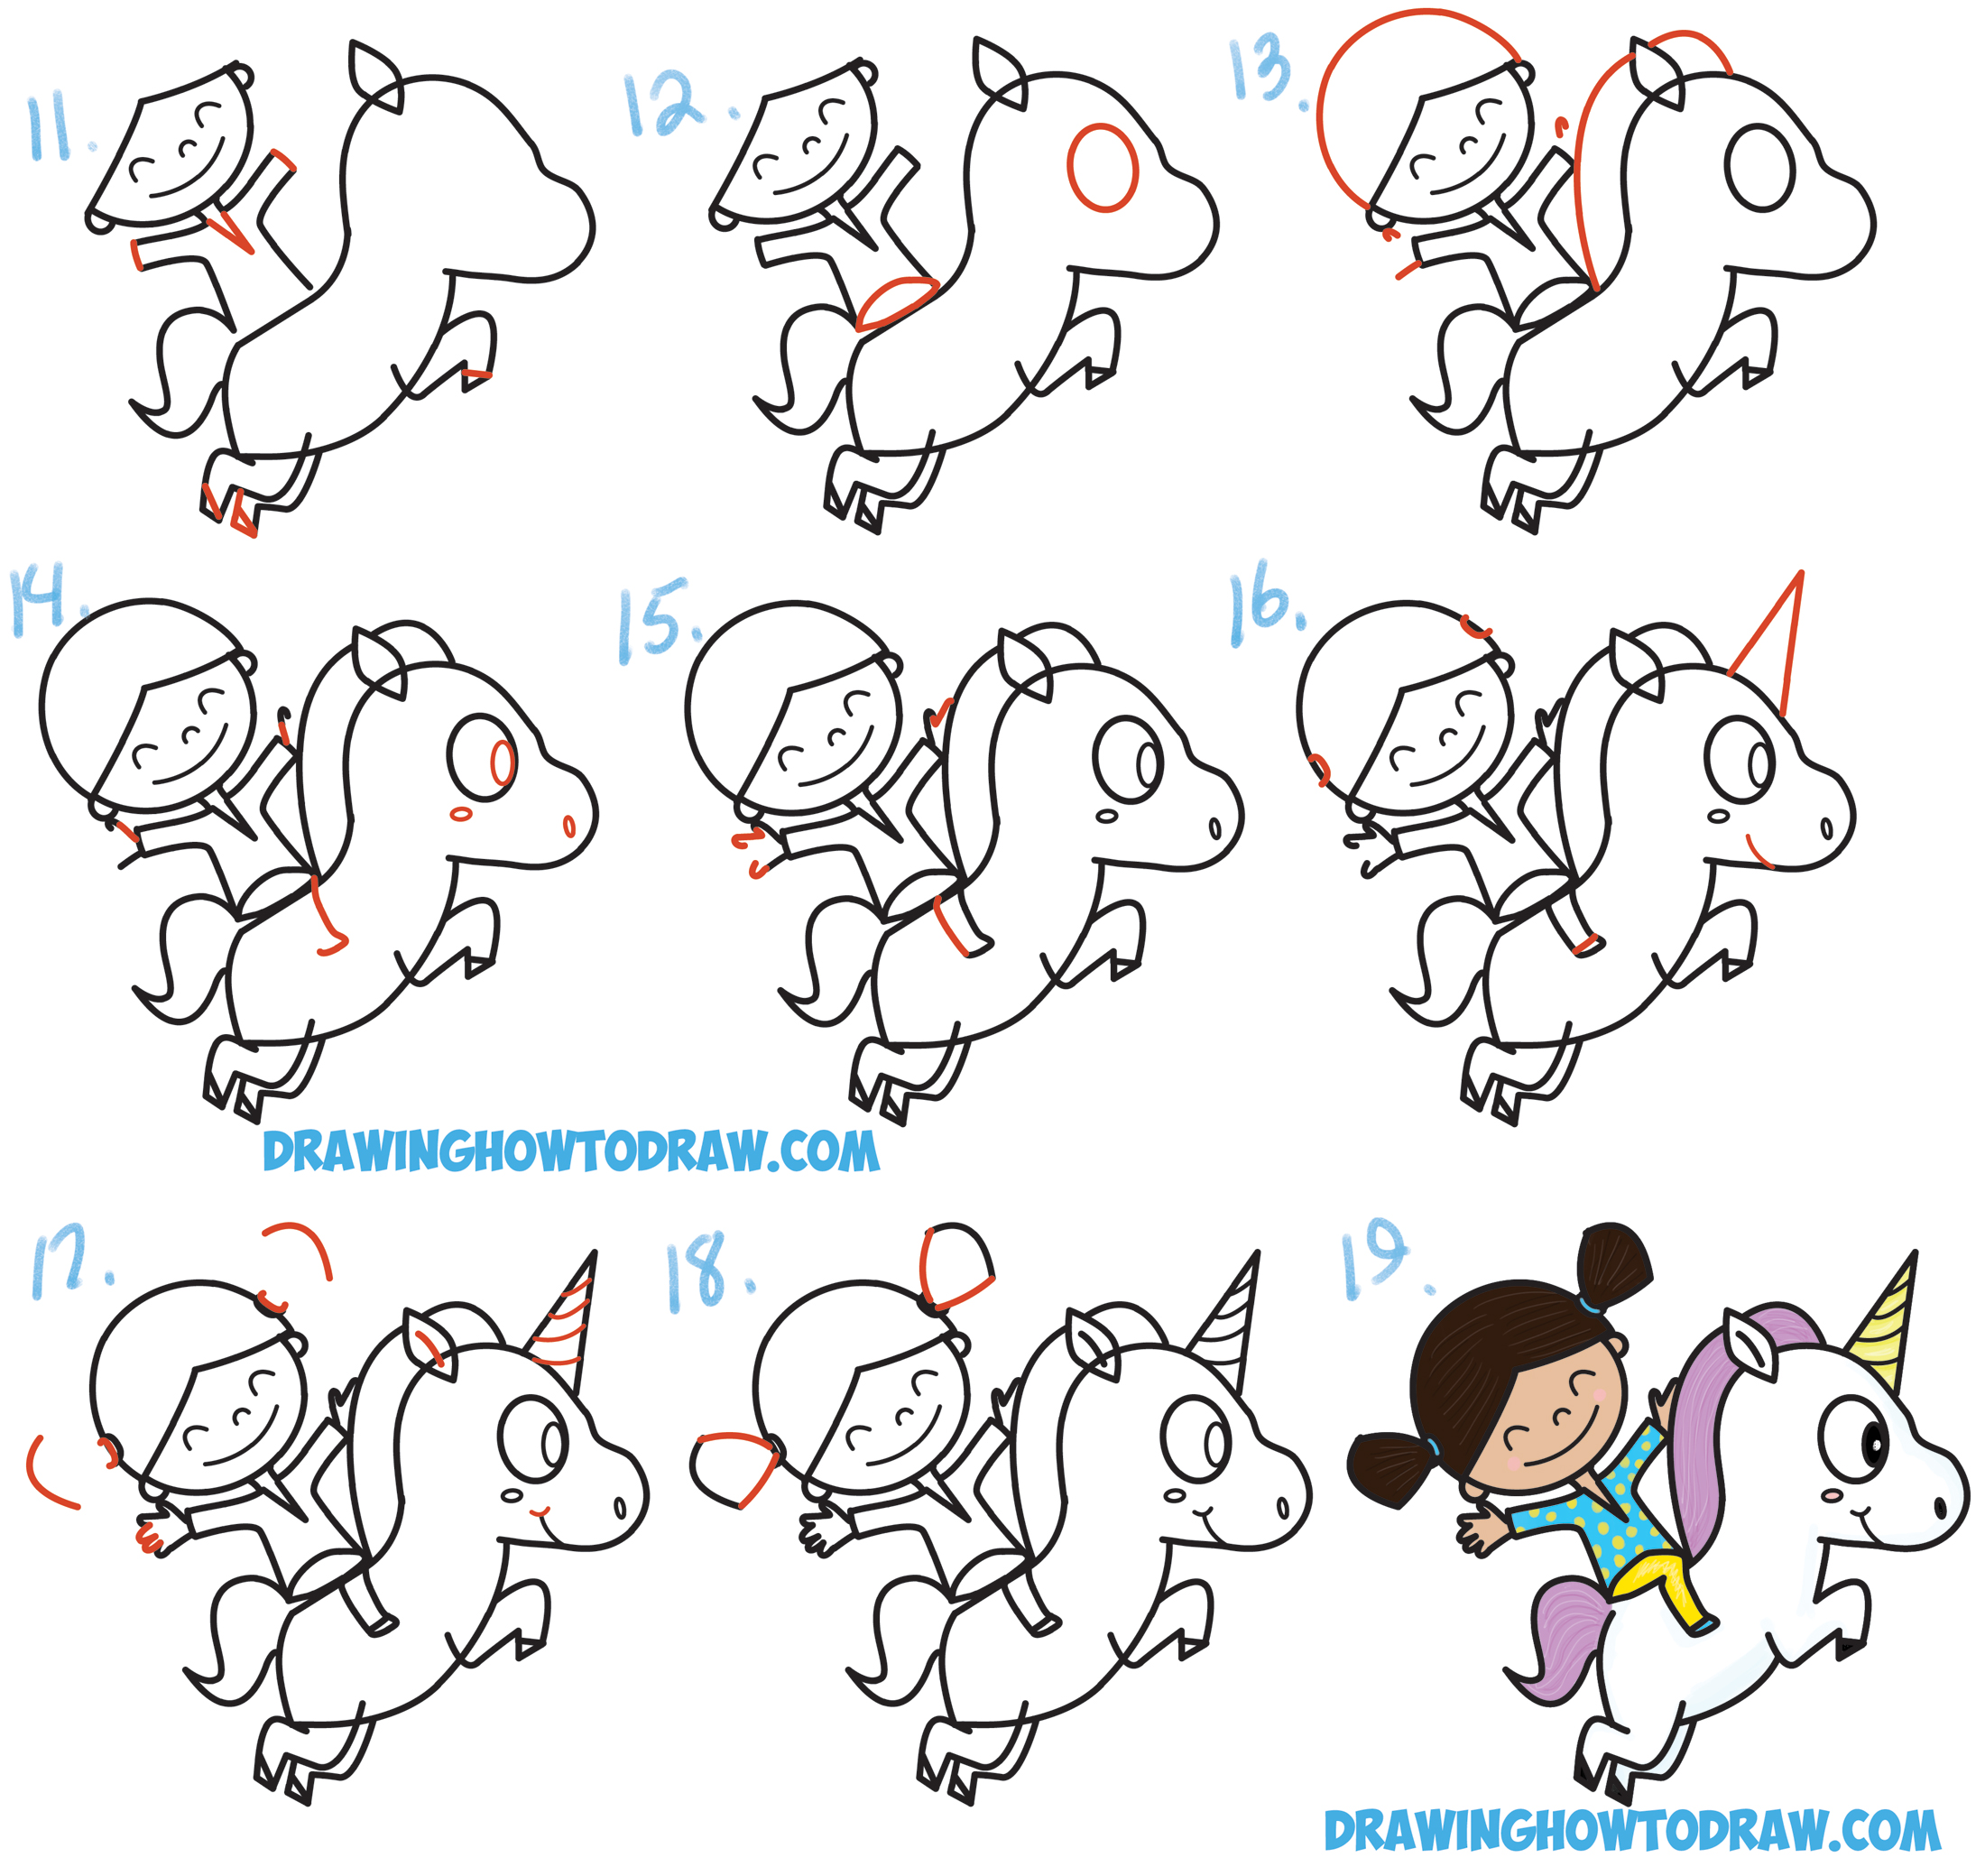 How To Draw A Cute Kawaii Chibi Girl Riding A Unicorn In Easy Step